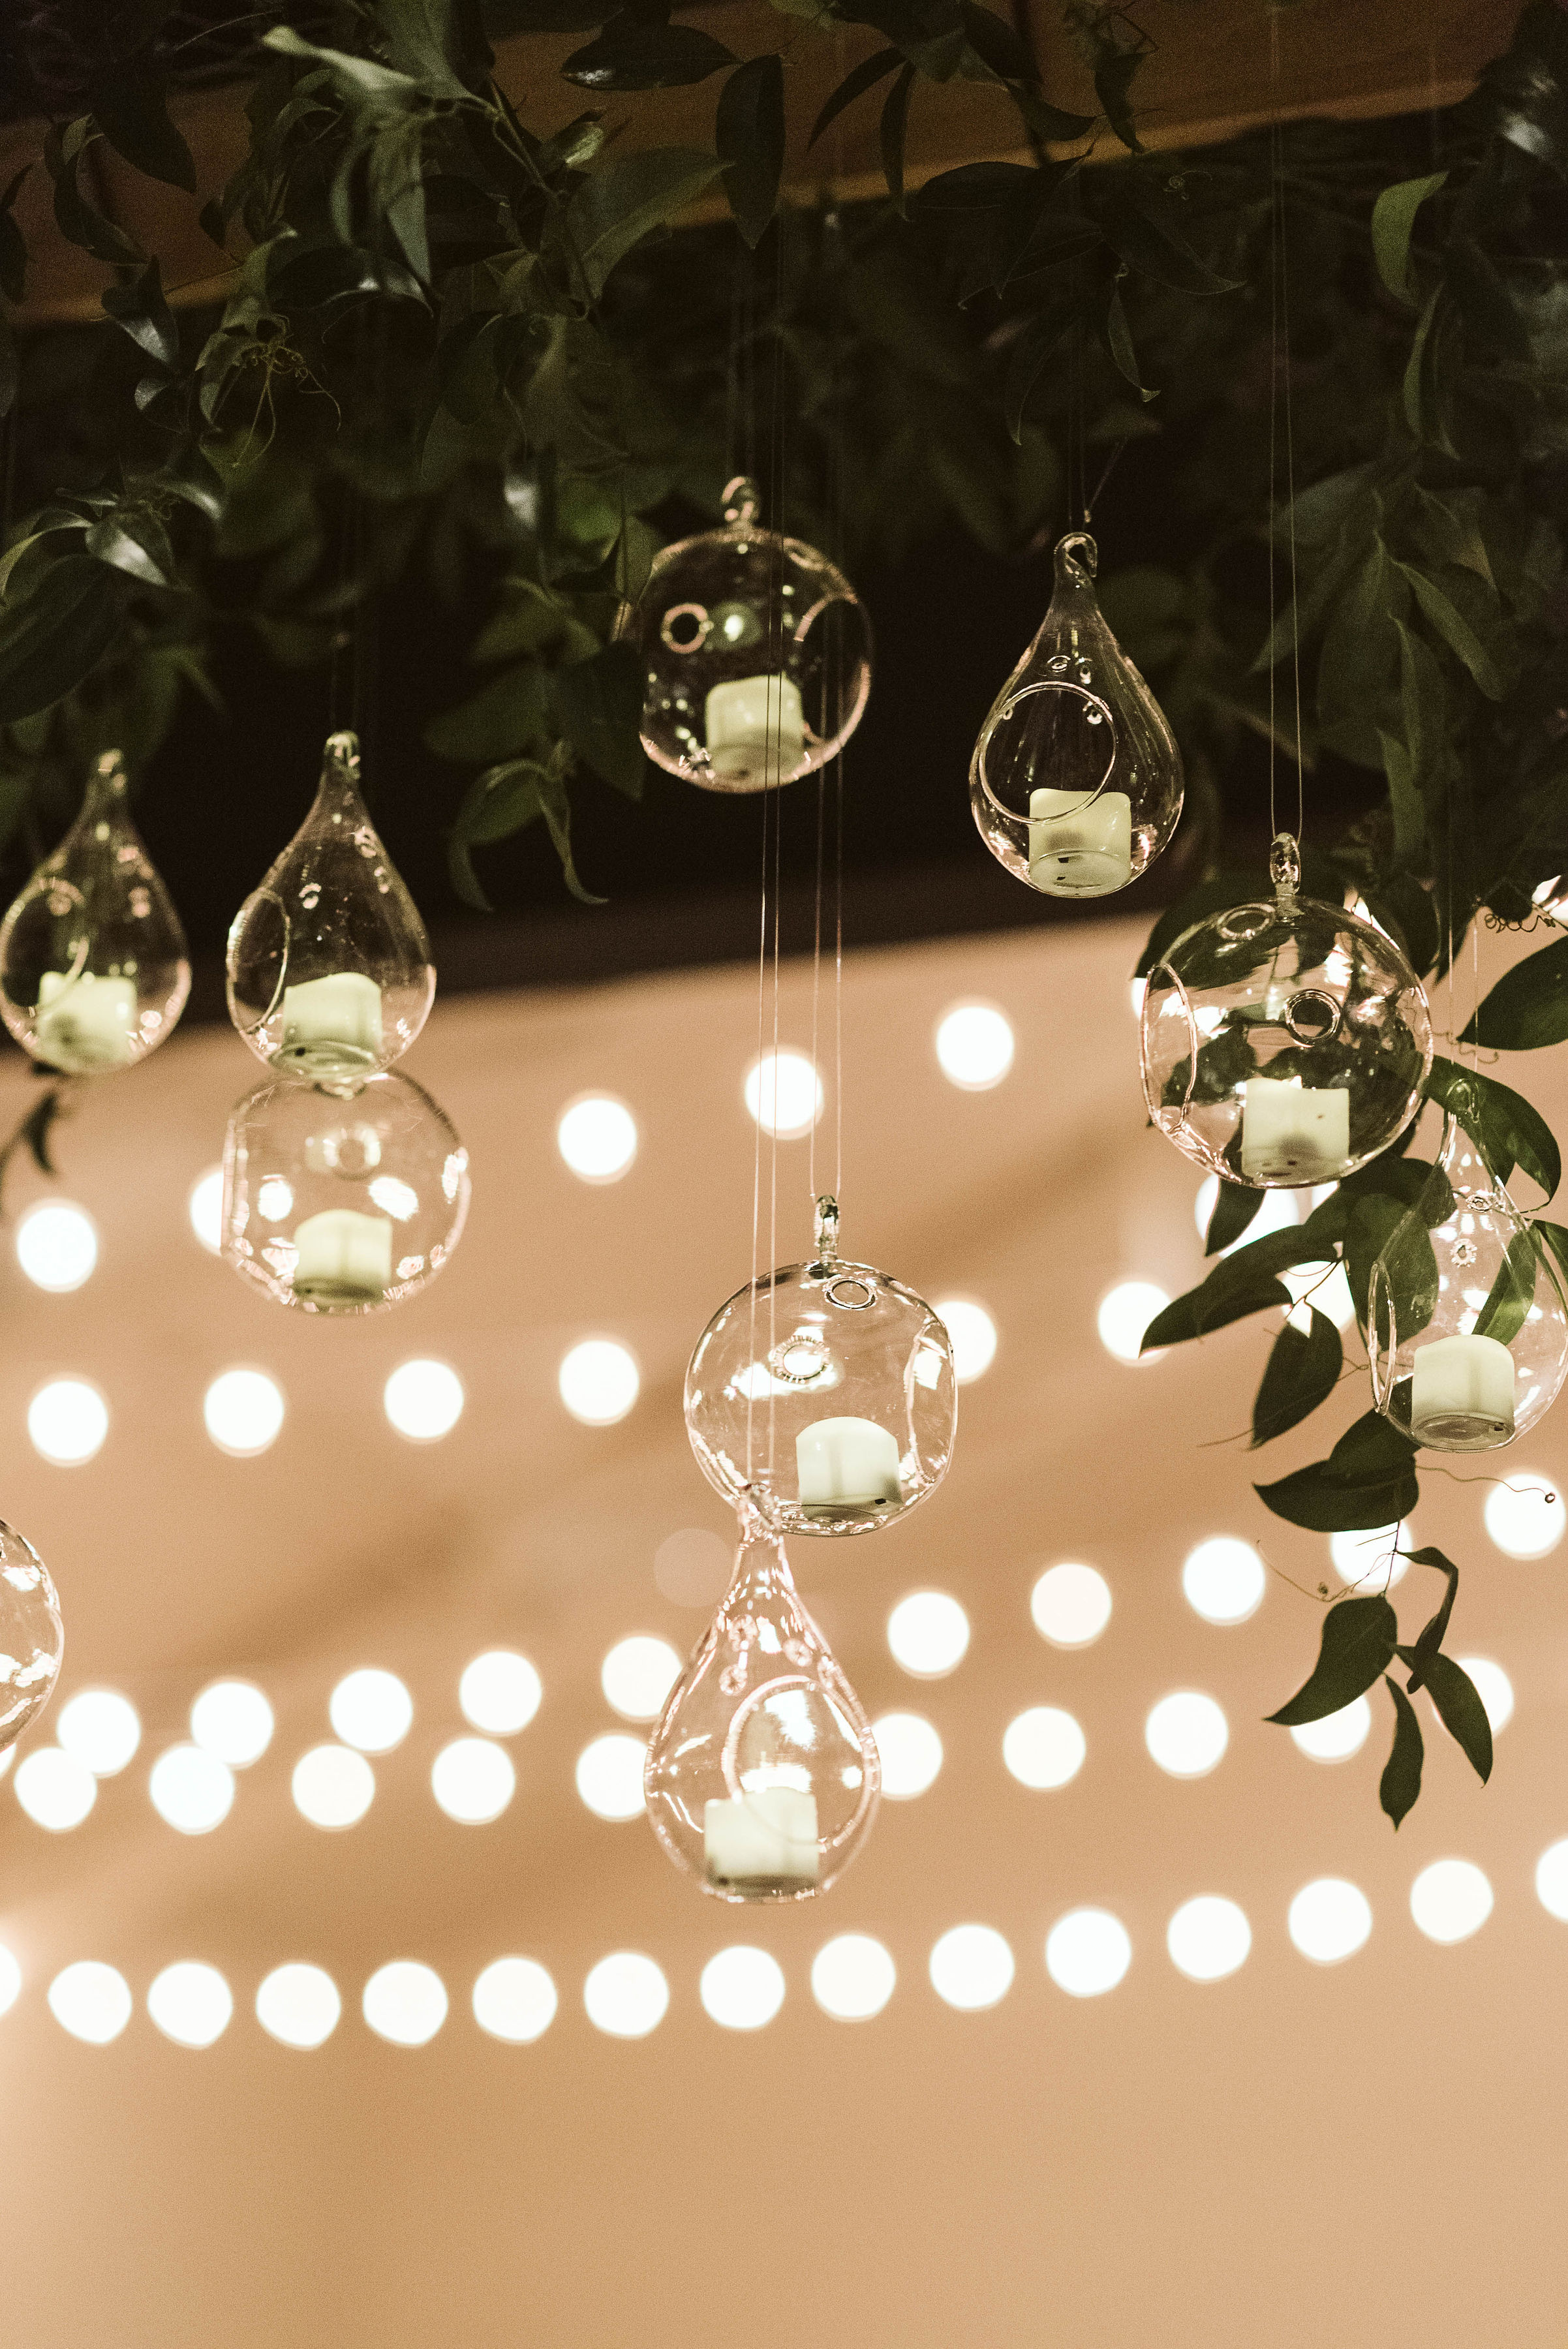 Hanging candle installation with untamed greenery // Tennessee Wedding Floral Design